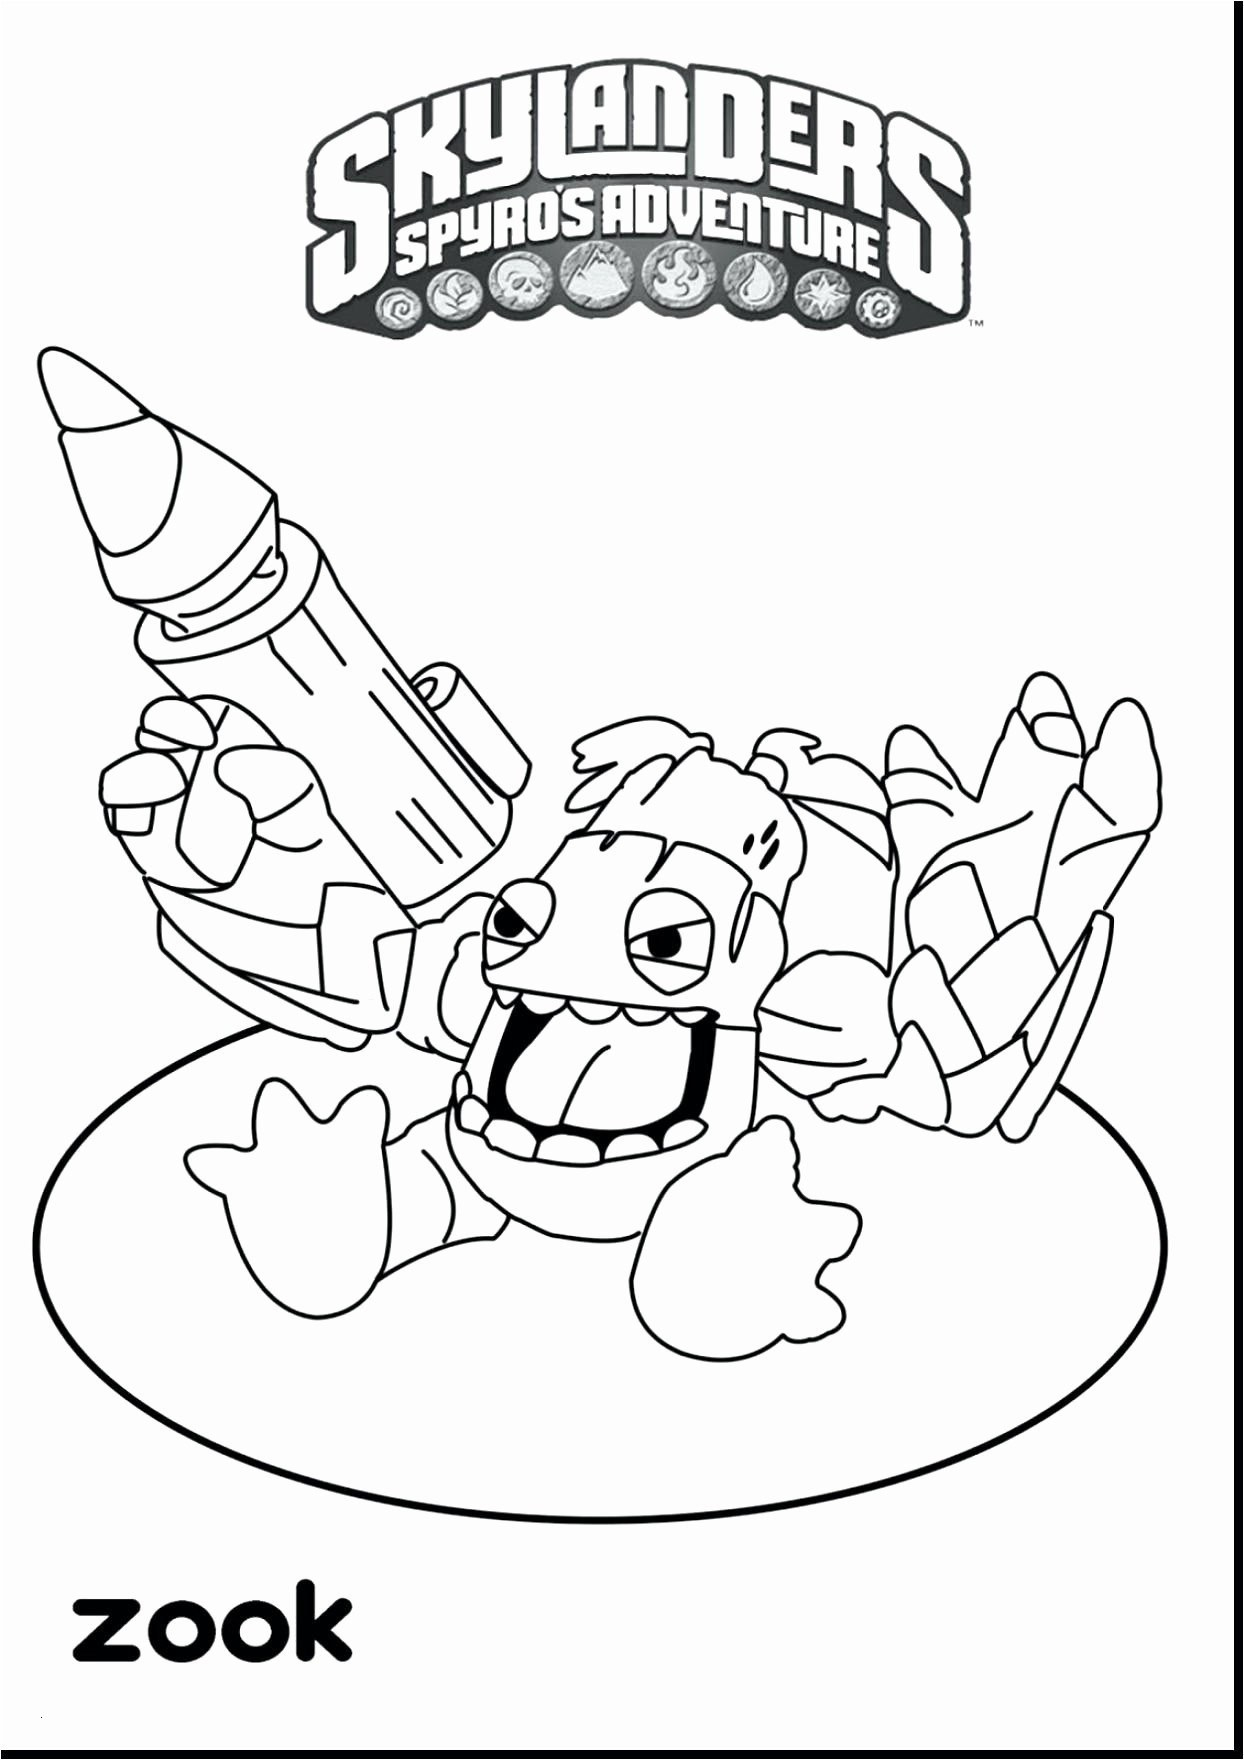 online easter coloring pages Download-Coloring Pages line for Kids Kid Line Coloring Pages 21csb 13-f